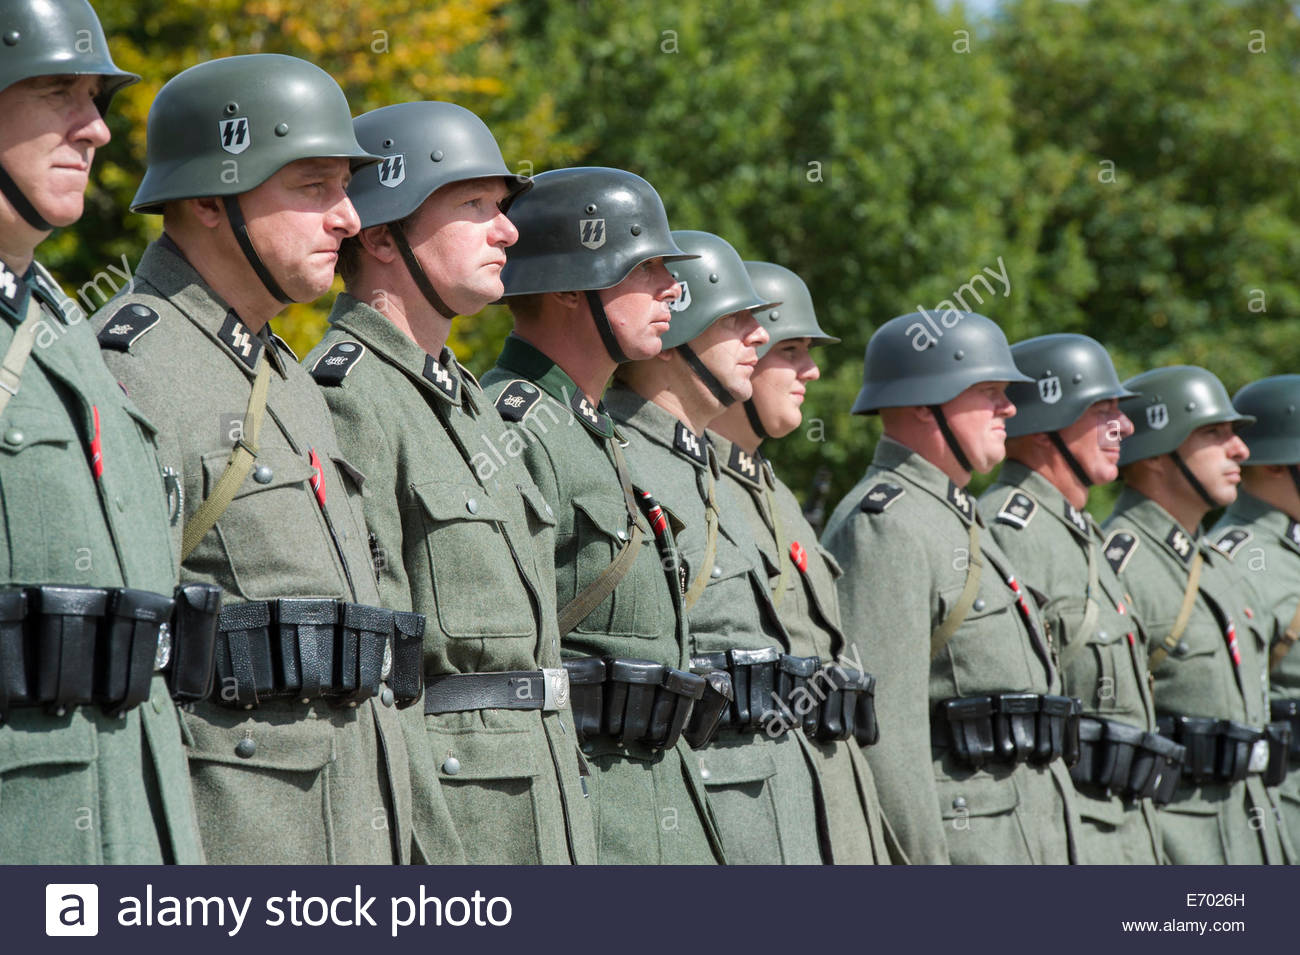 WW2 German SS army soldiers. Historical re enactment at Military Odyssey, Detling, Kent, UK - Stock Image